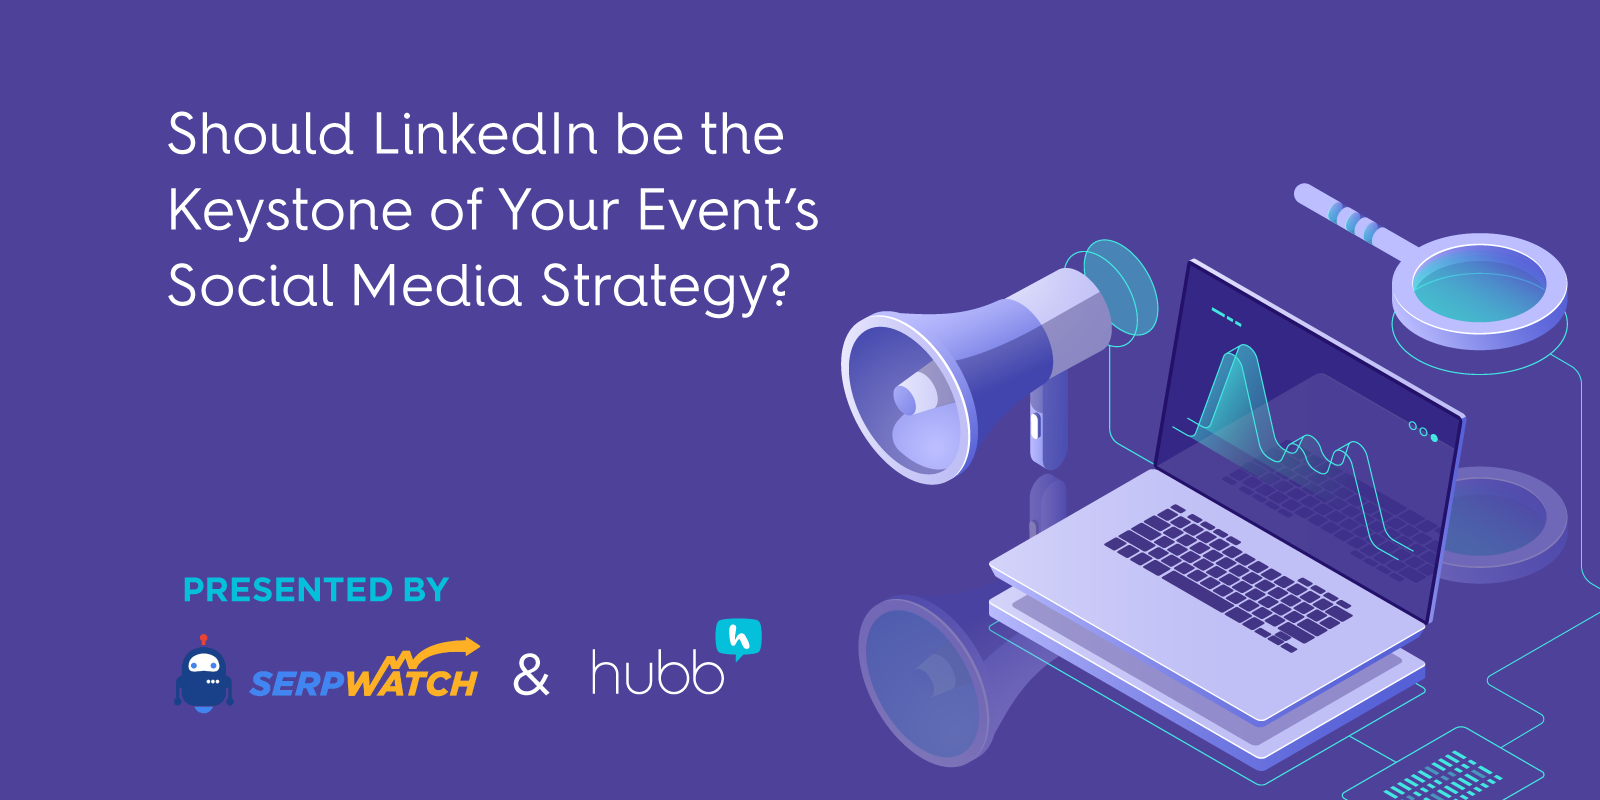 Should LinkedIn be the Keystone of Your Event's Social Media Strategy?